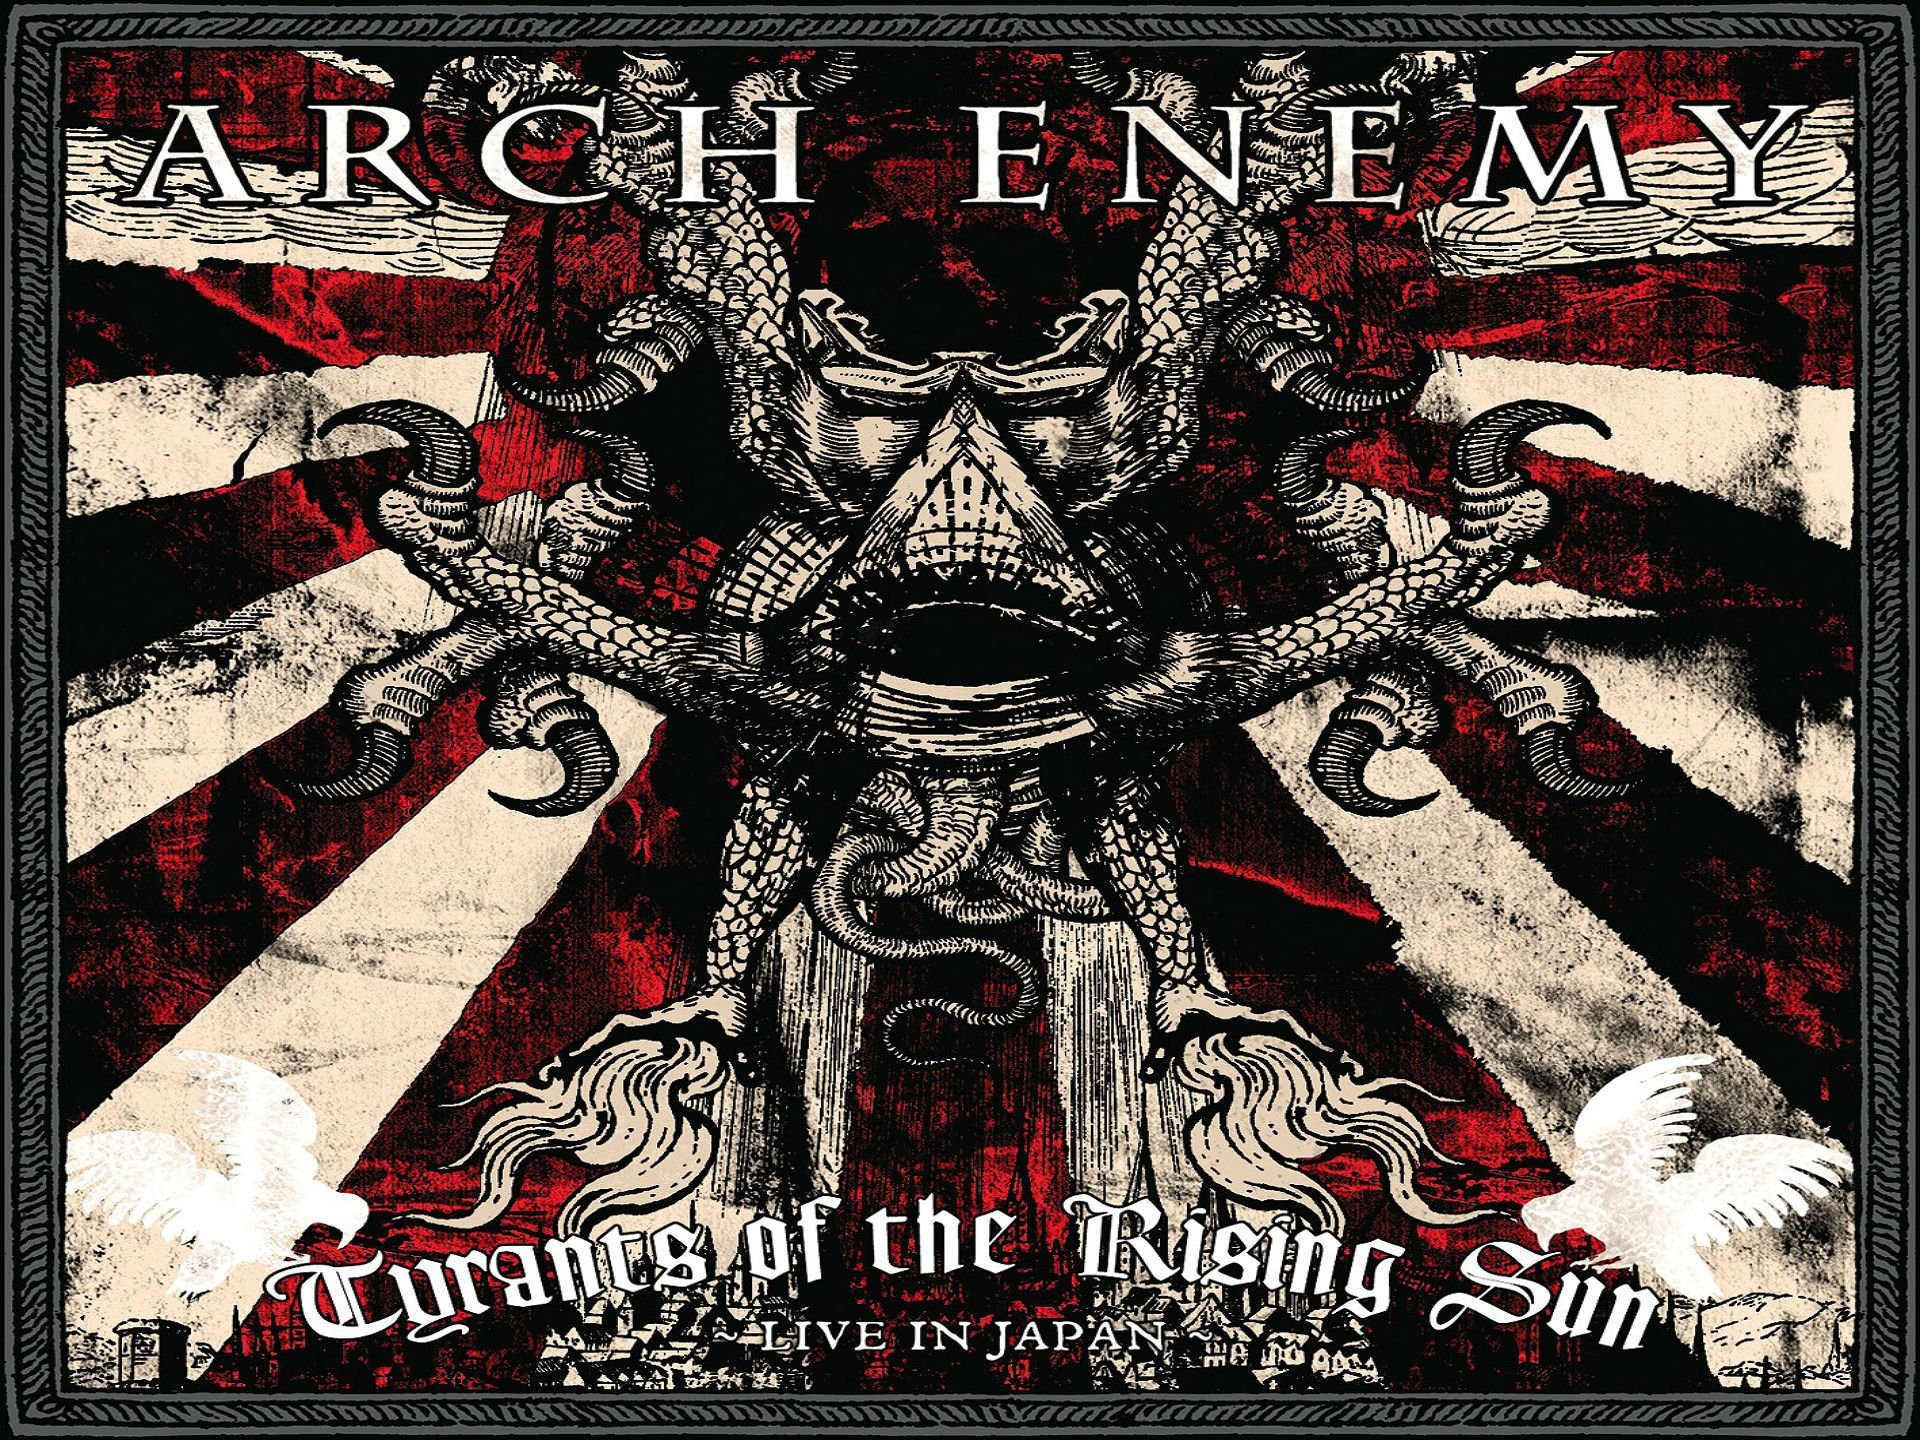 1920x1440 Arch Enemy Death Metal Heavy Progressive Thrash Poster Dark Skull Occult  Evil Satanic Wallpaper At Dark Wallpapers